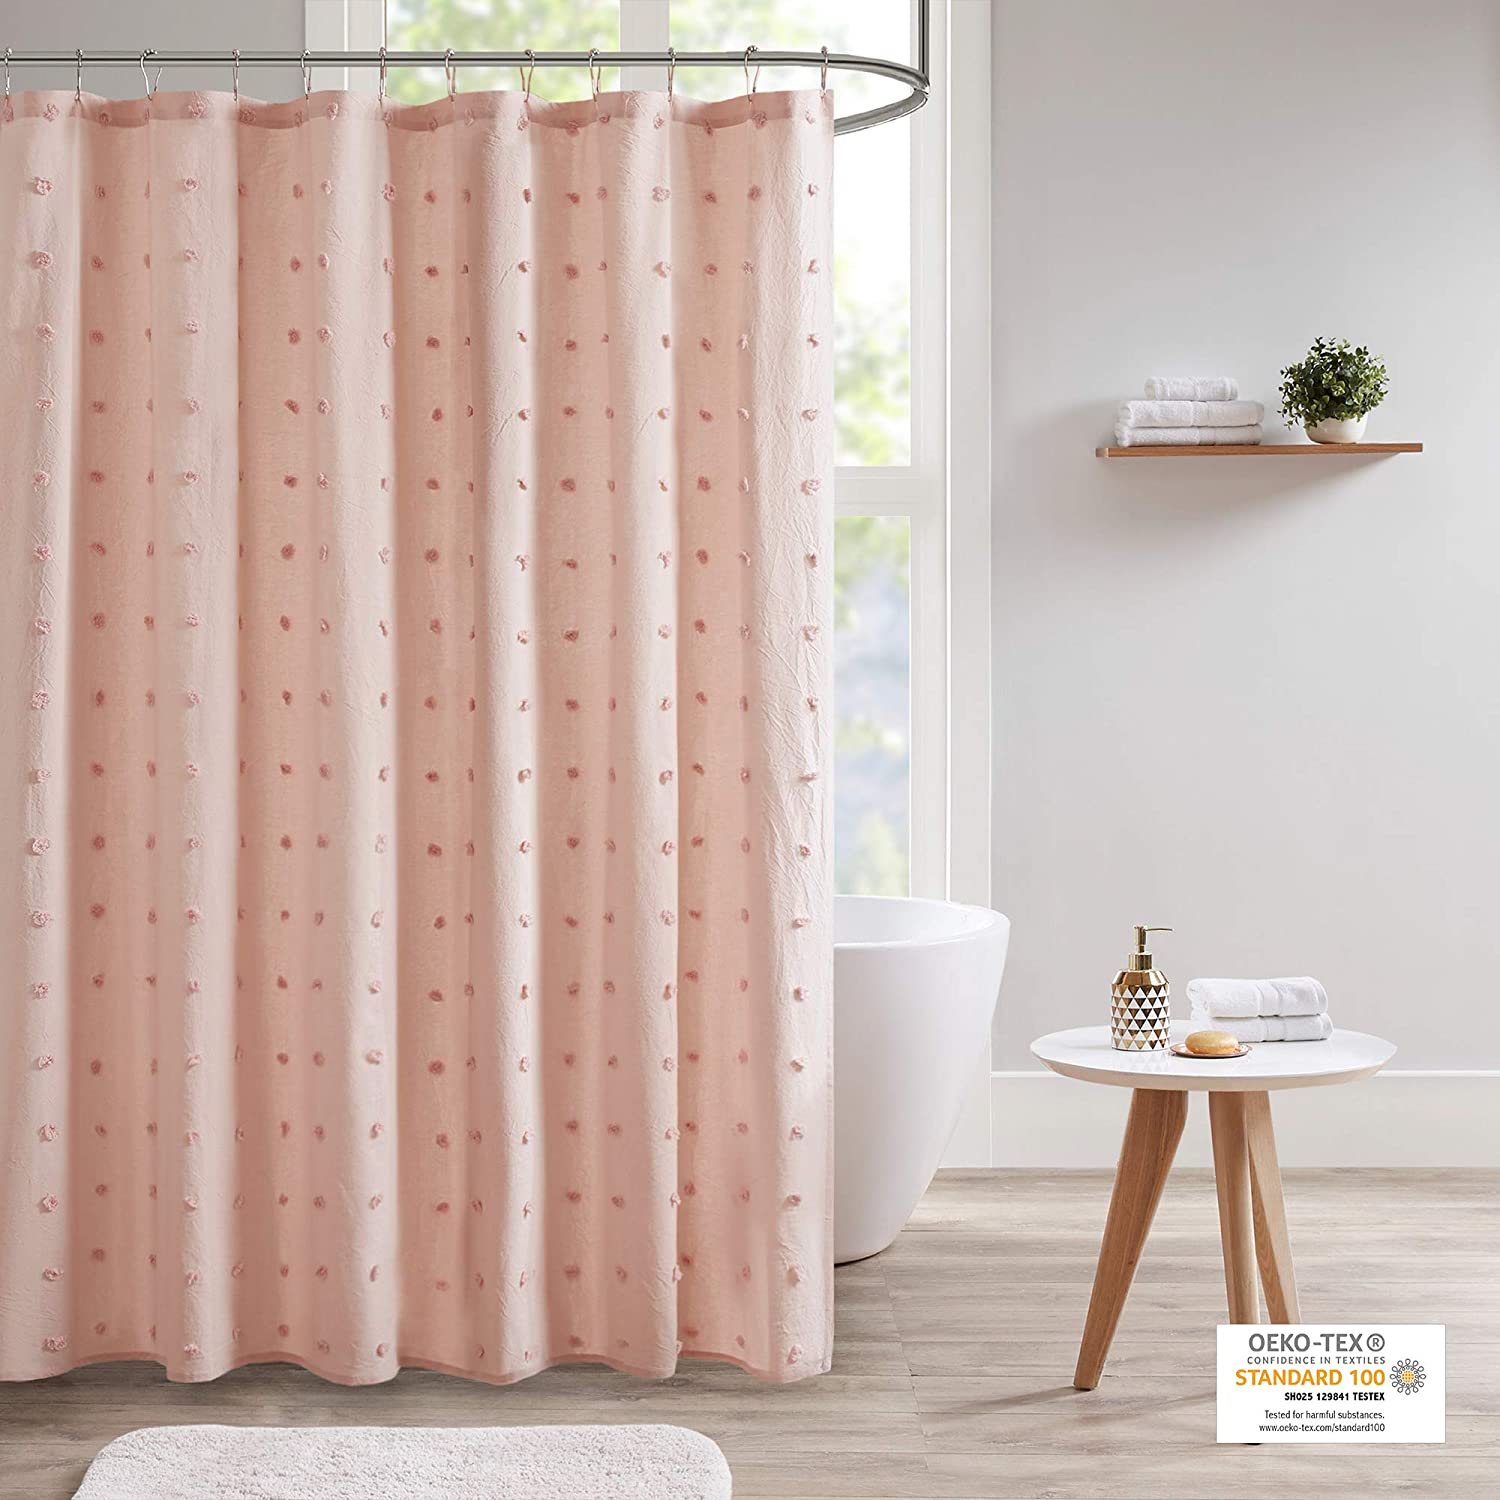 "Urban Habitat Brooklyn Cotton Fabric Shower Curtain Jacquard Pom Machine Washable Shabby Chic Modern Home Bathroom Décor Bathtub Privacy Screen, 70"" x 72"", Pink"